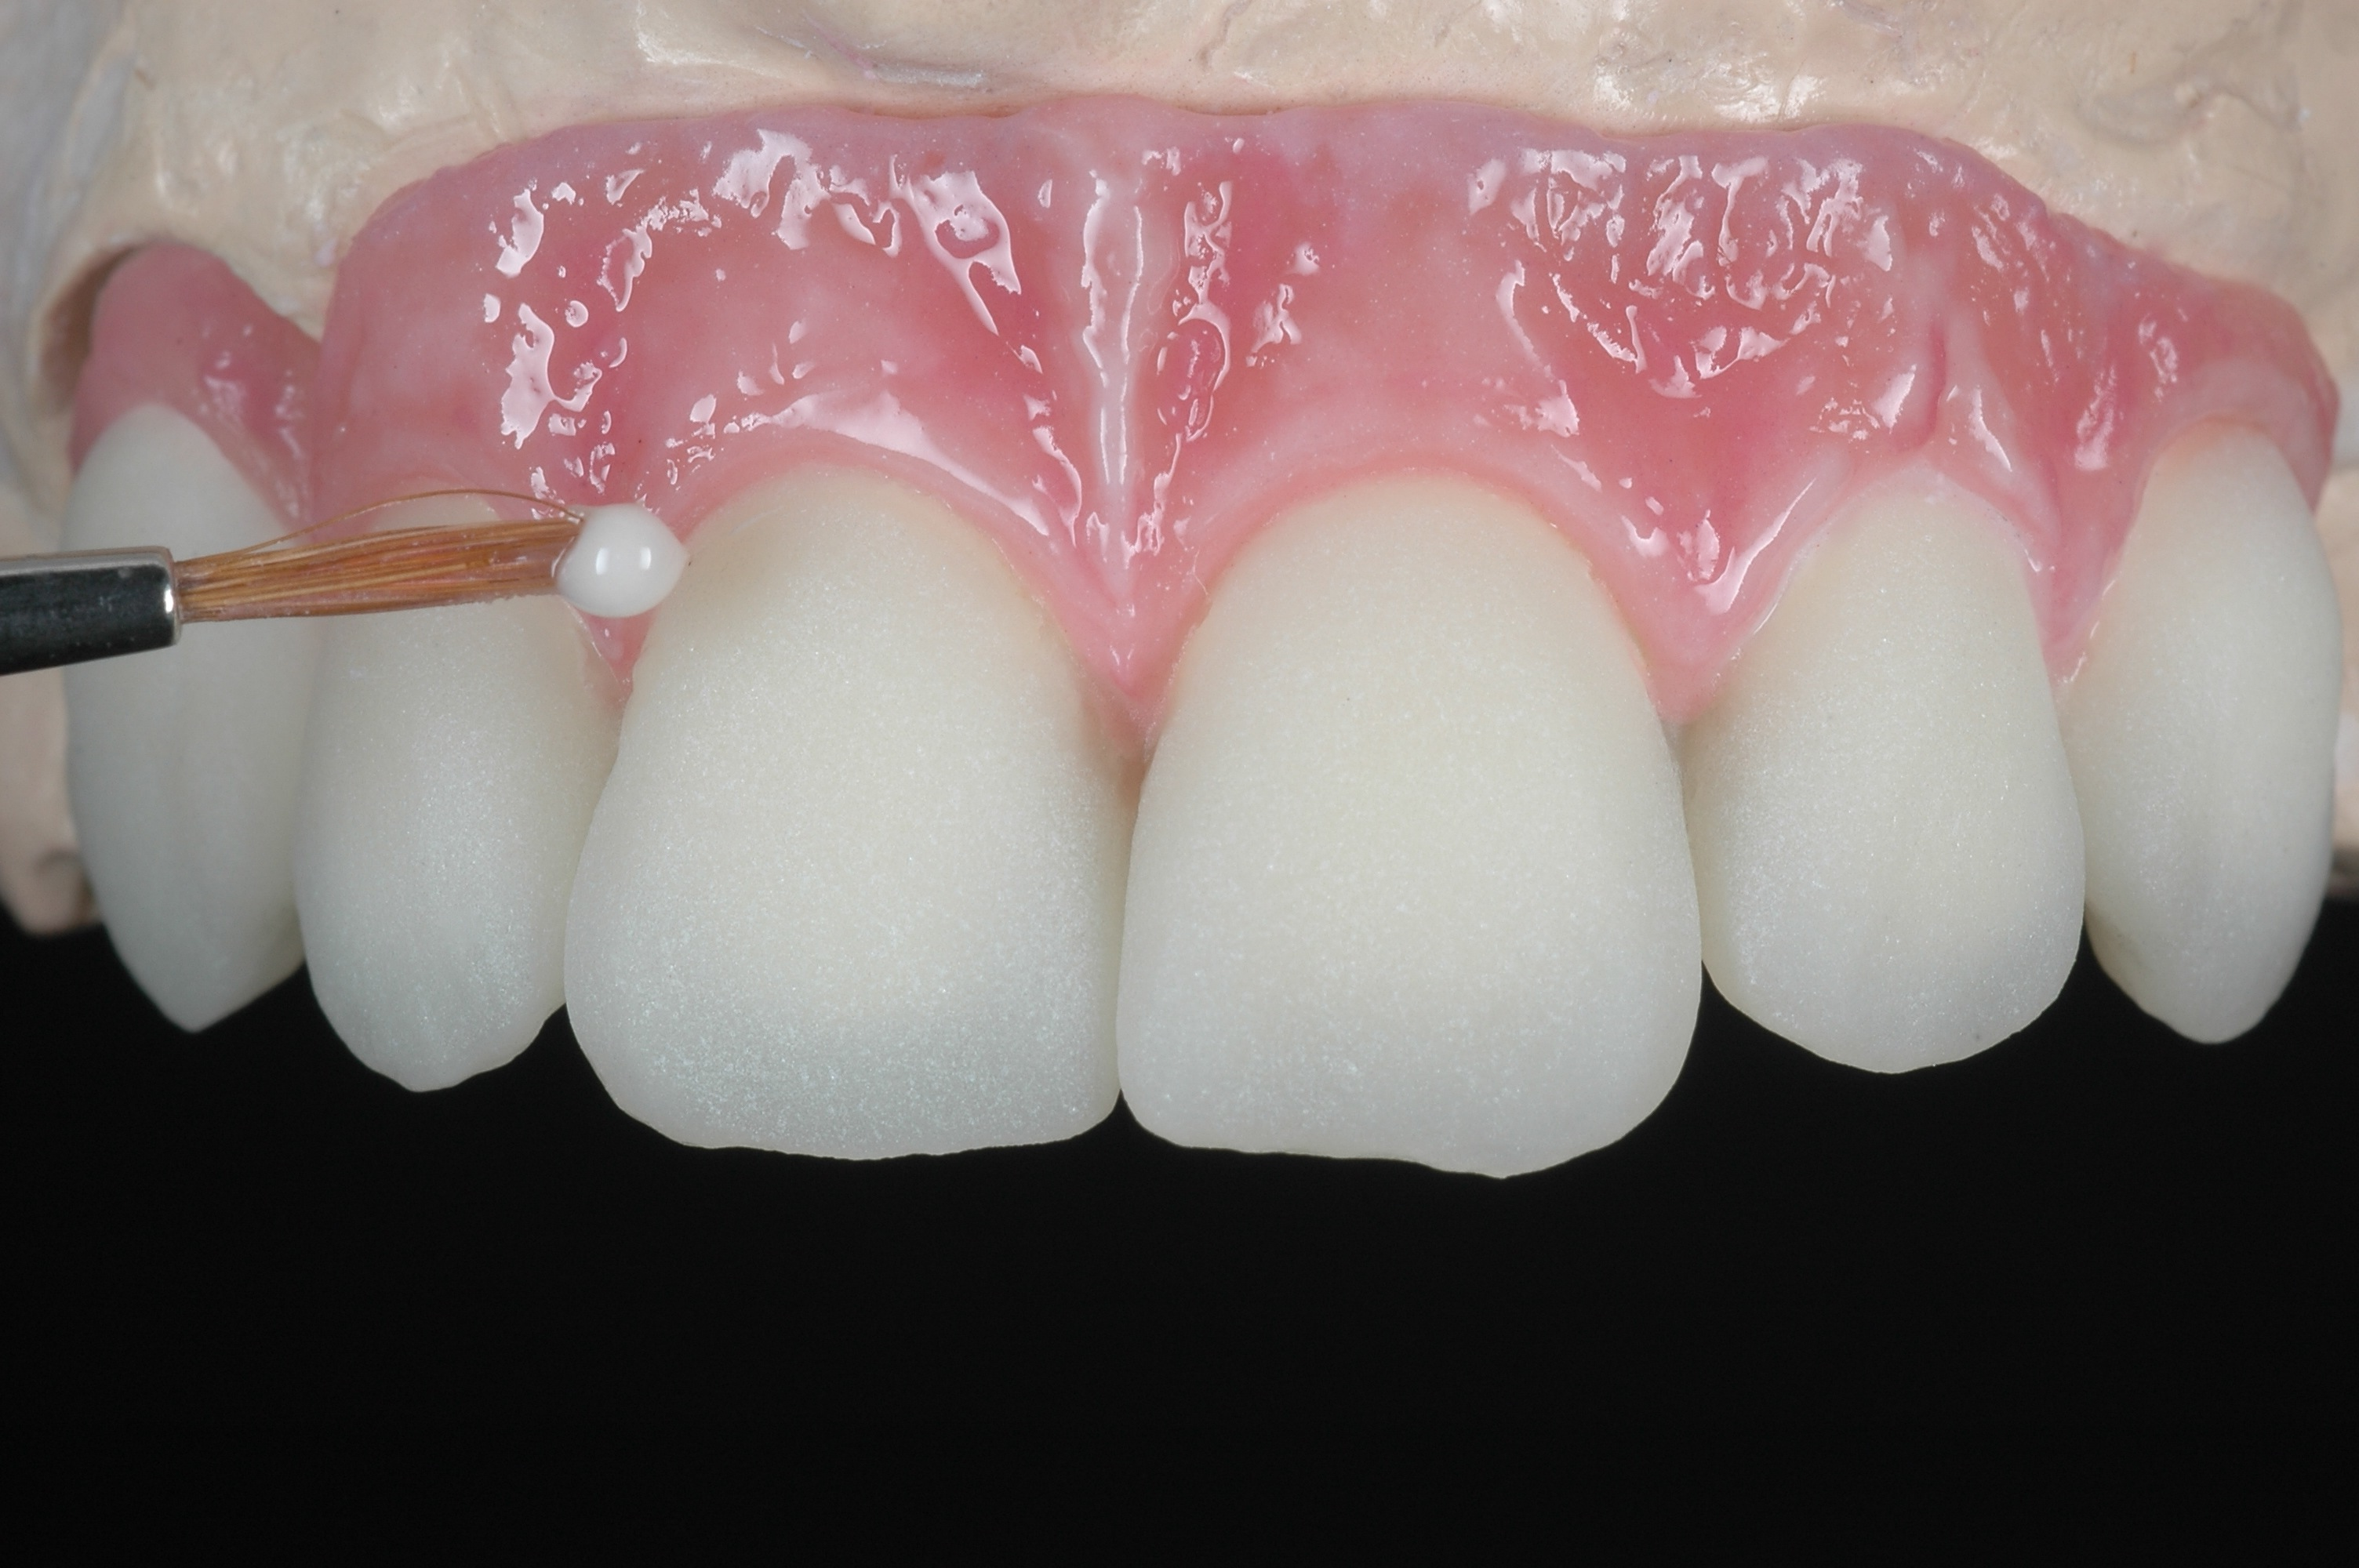 Gc Europe Initial Lustre Pastes Nf 3 Dimensional